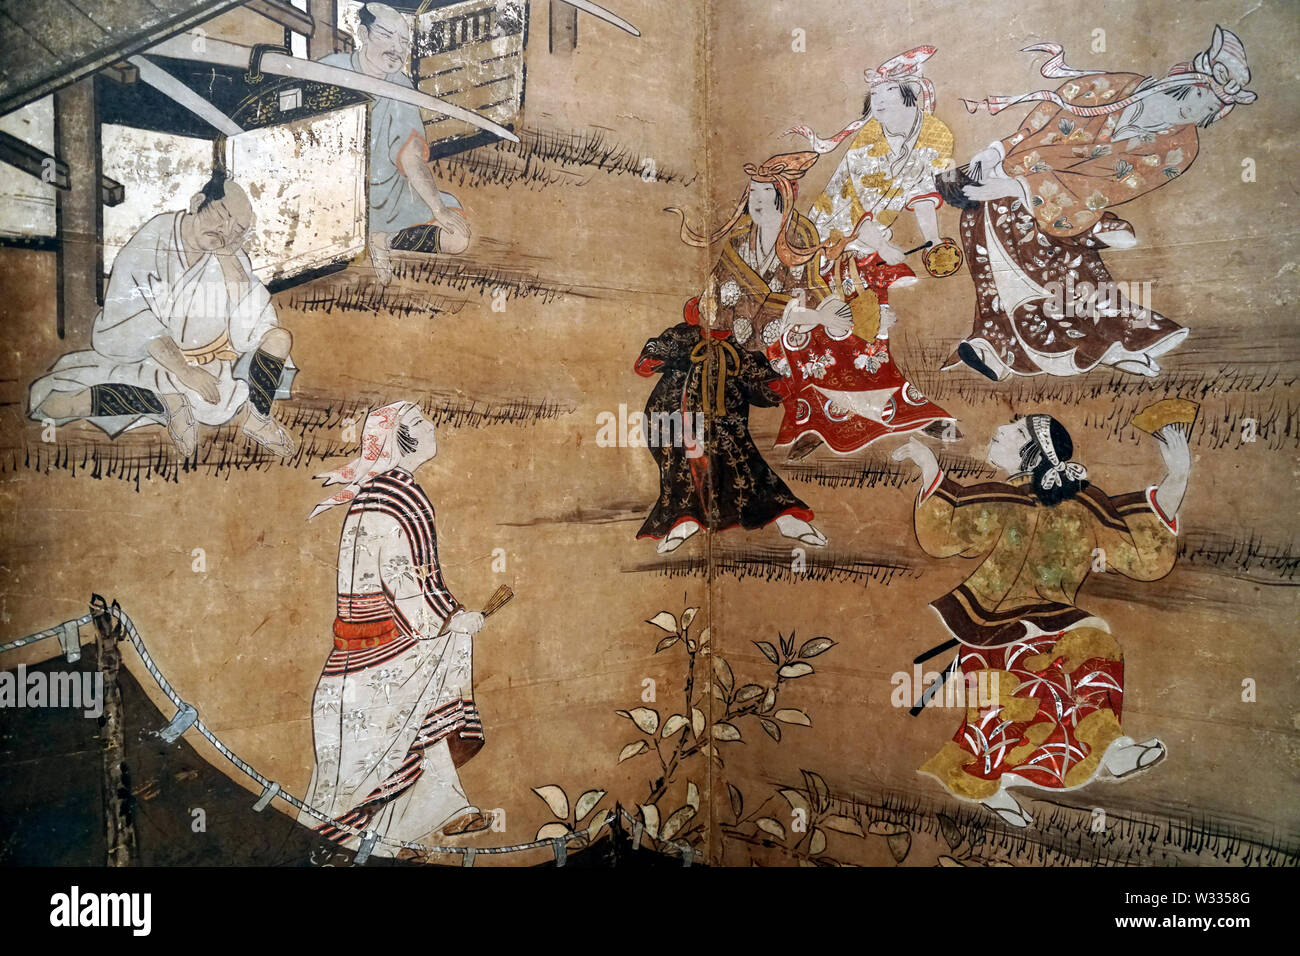 Merrymaking under Cherry Blossom Trees (detail), by Kano Naganobu, color on paper, Edo period, 17th century Stock Photo